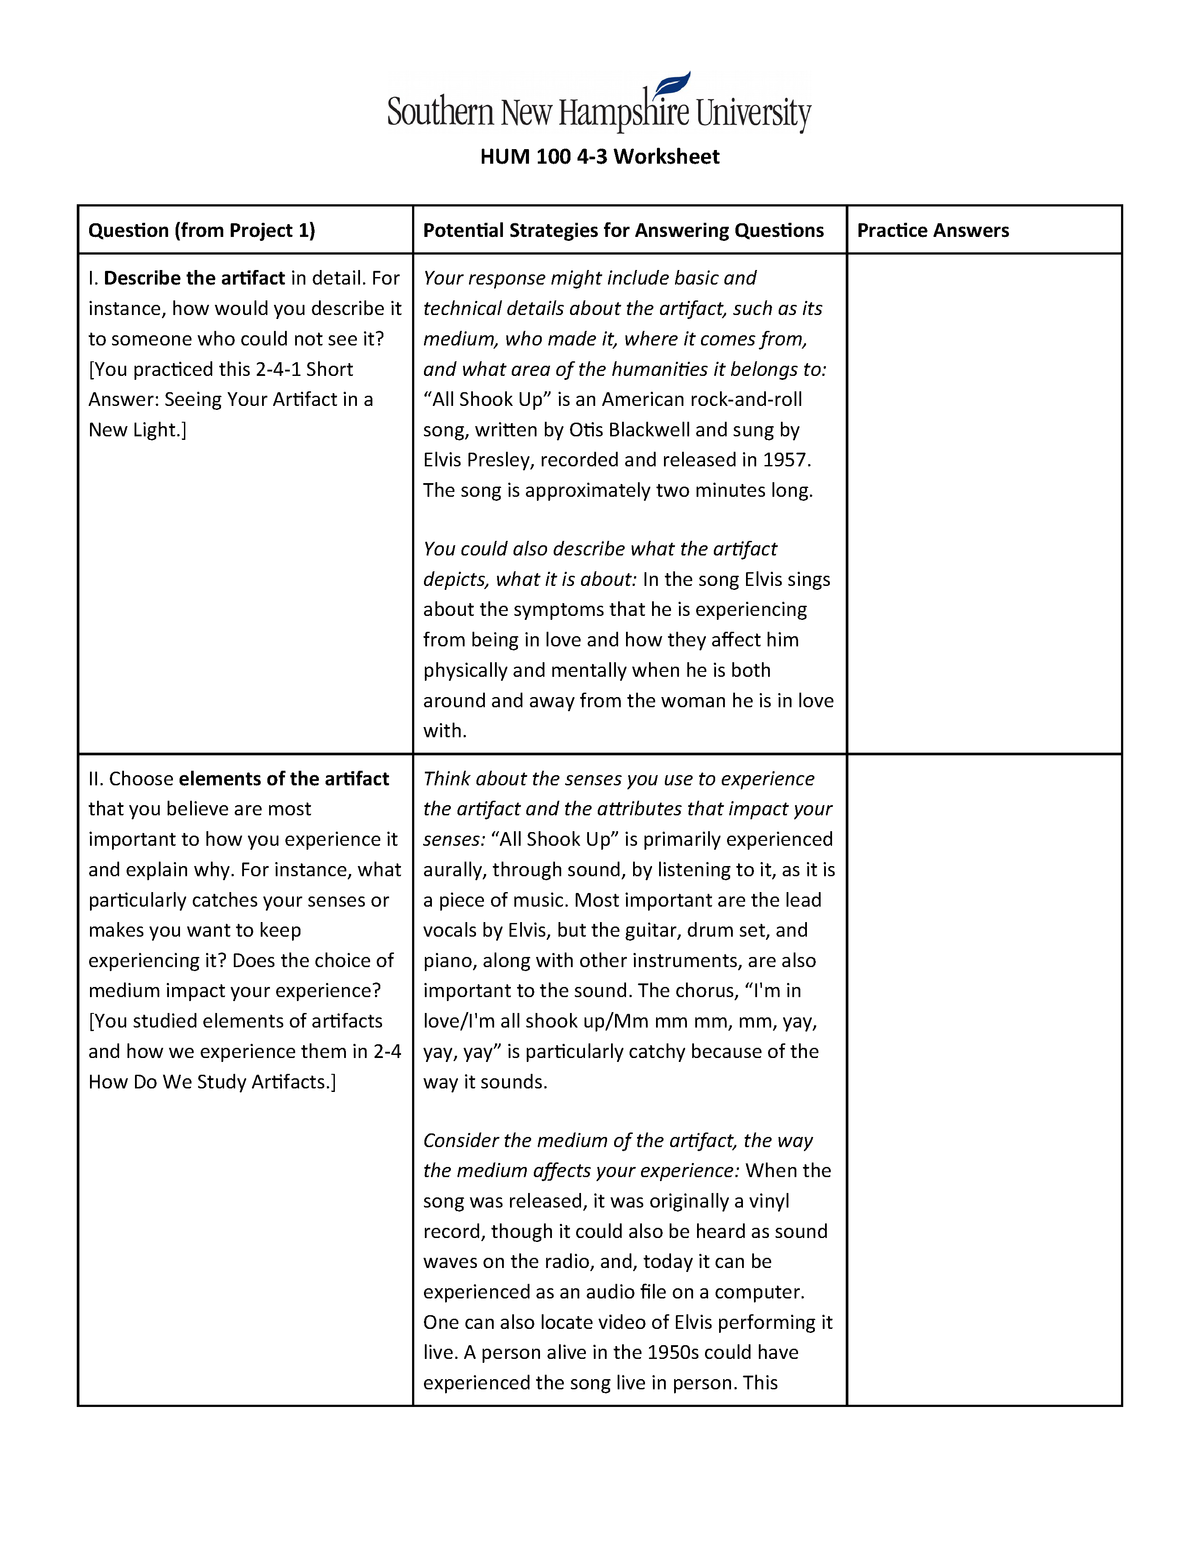 HUM 100 4-3 Worksheet - HUM100: Perspectives in the